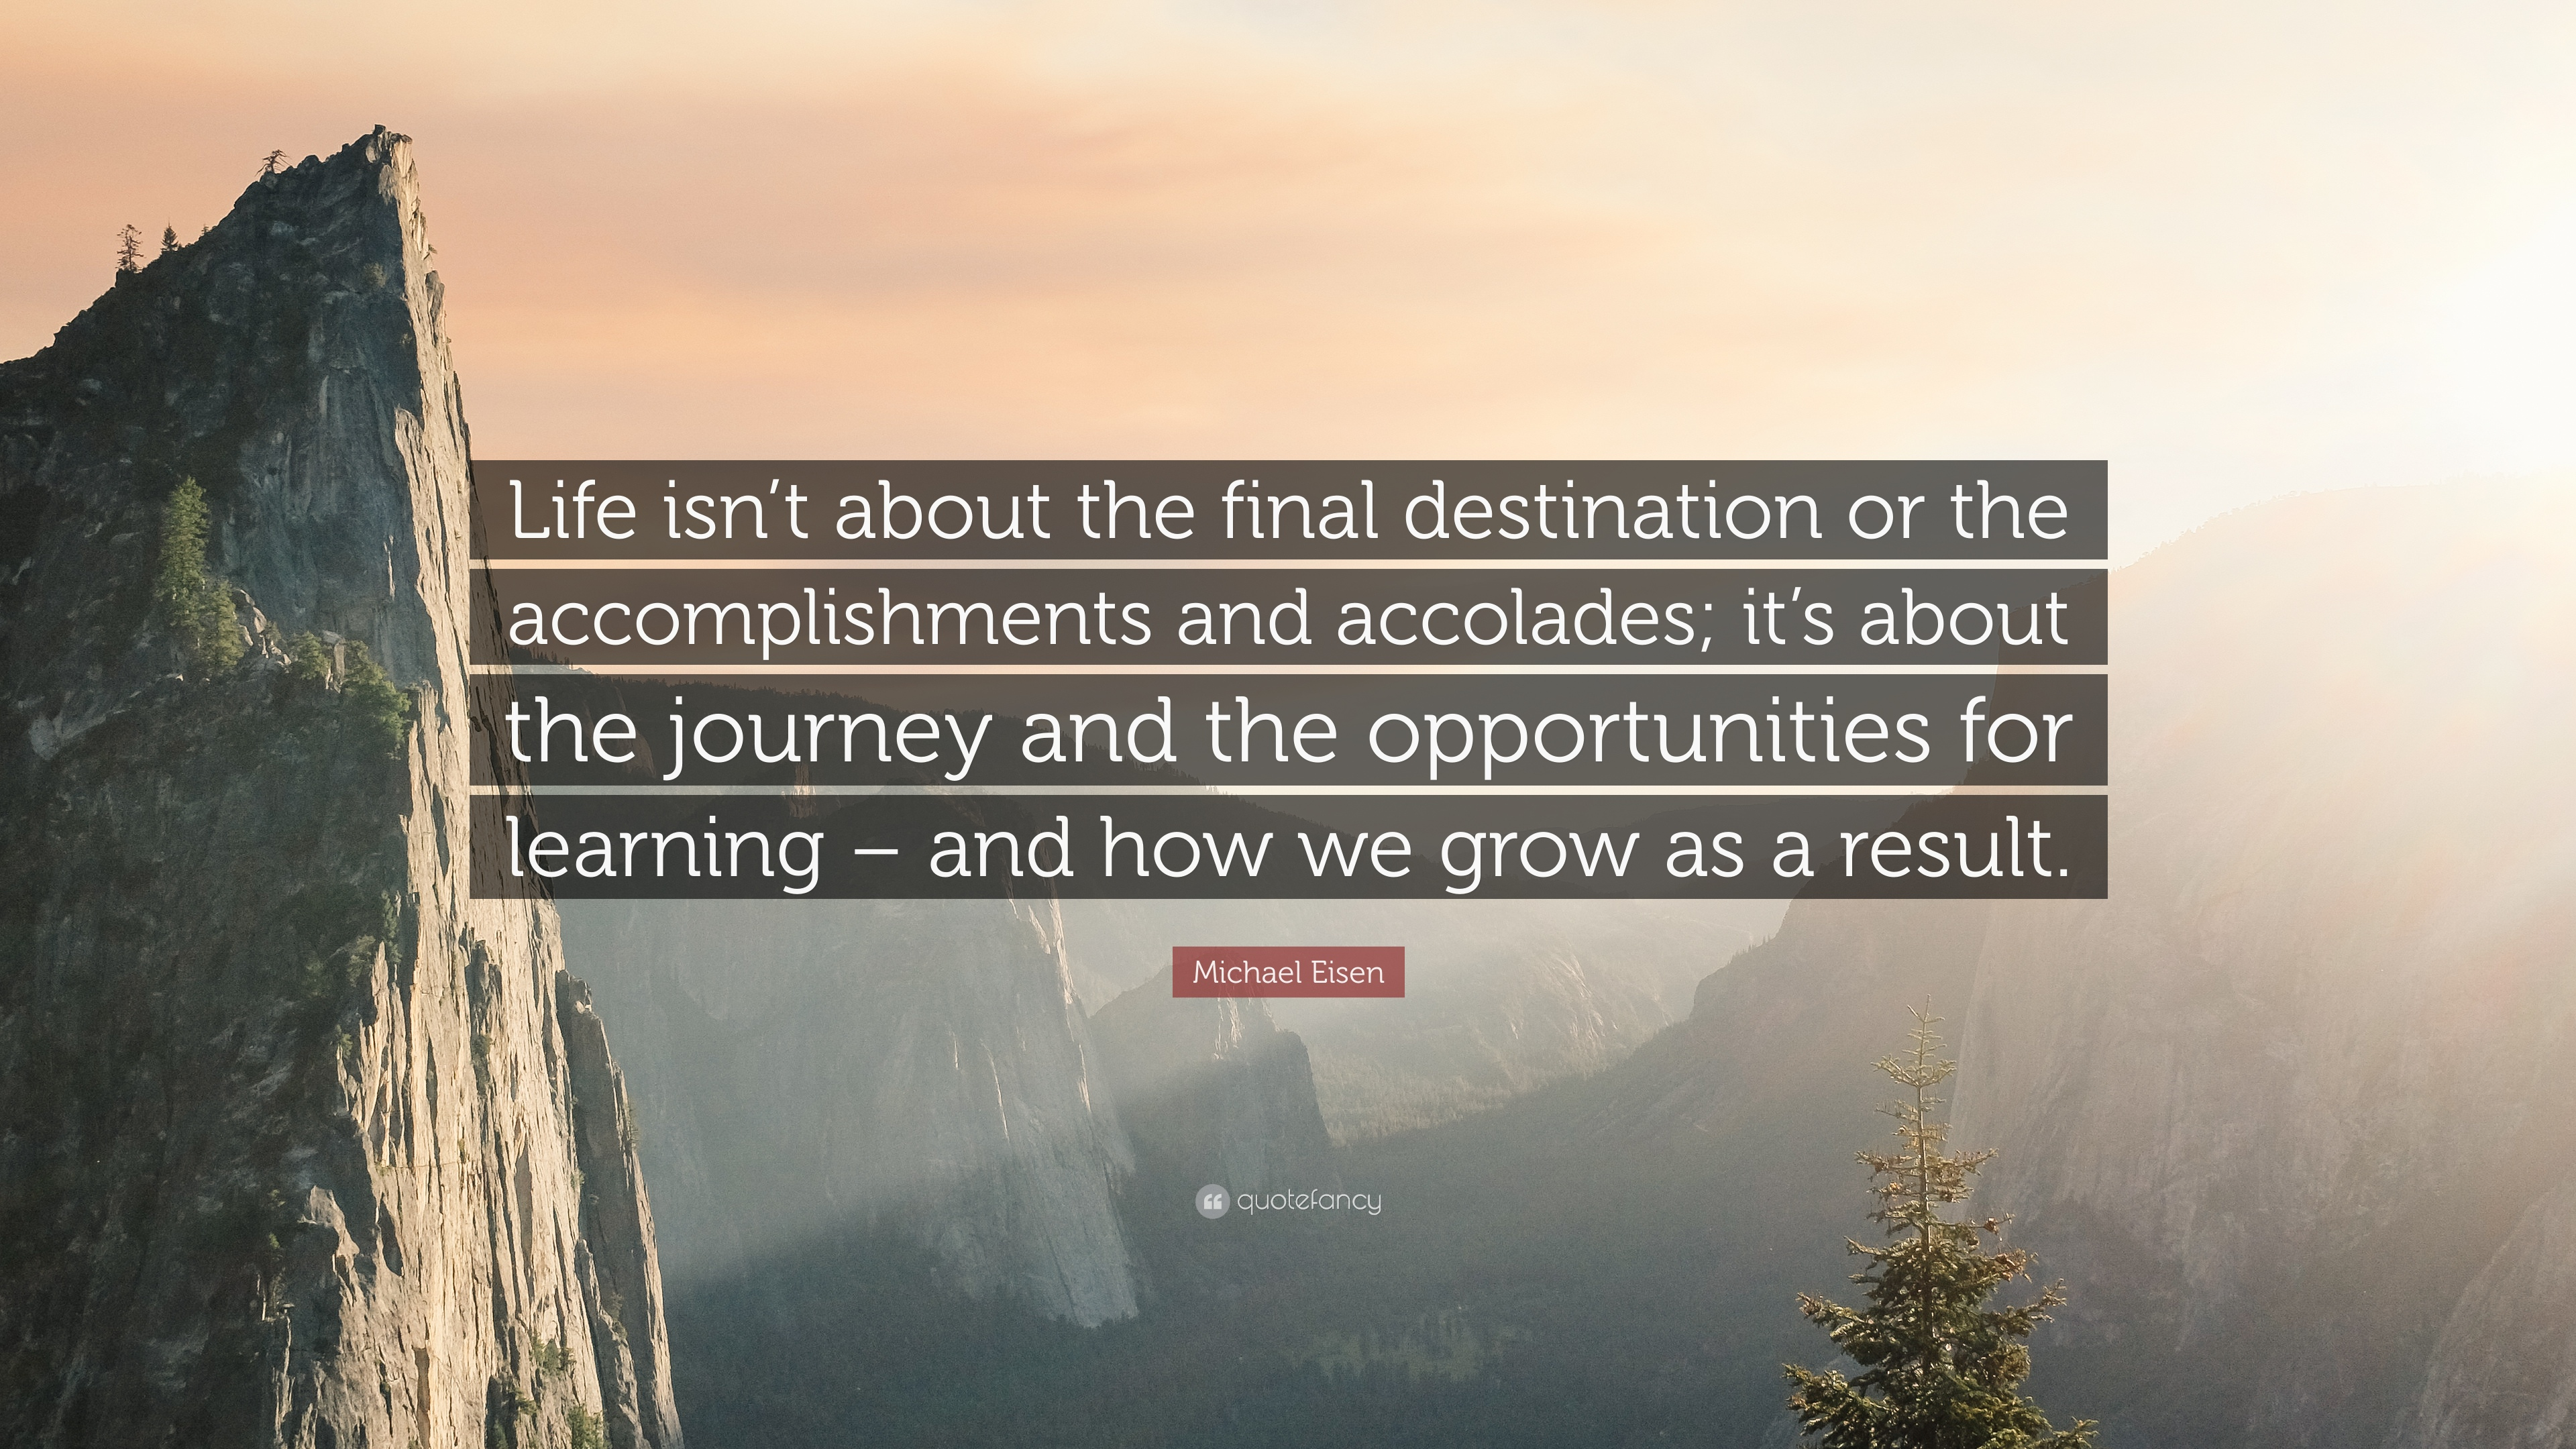 Michael Eisen Quote Life Isnt About The Final Destination Or Accomplishments